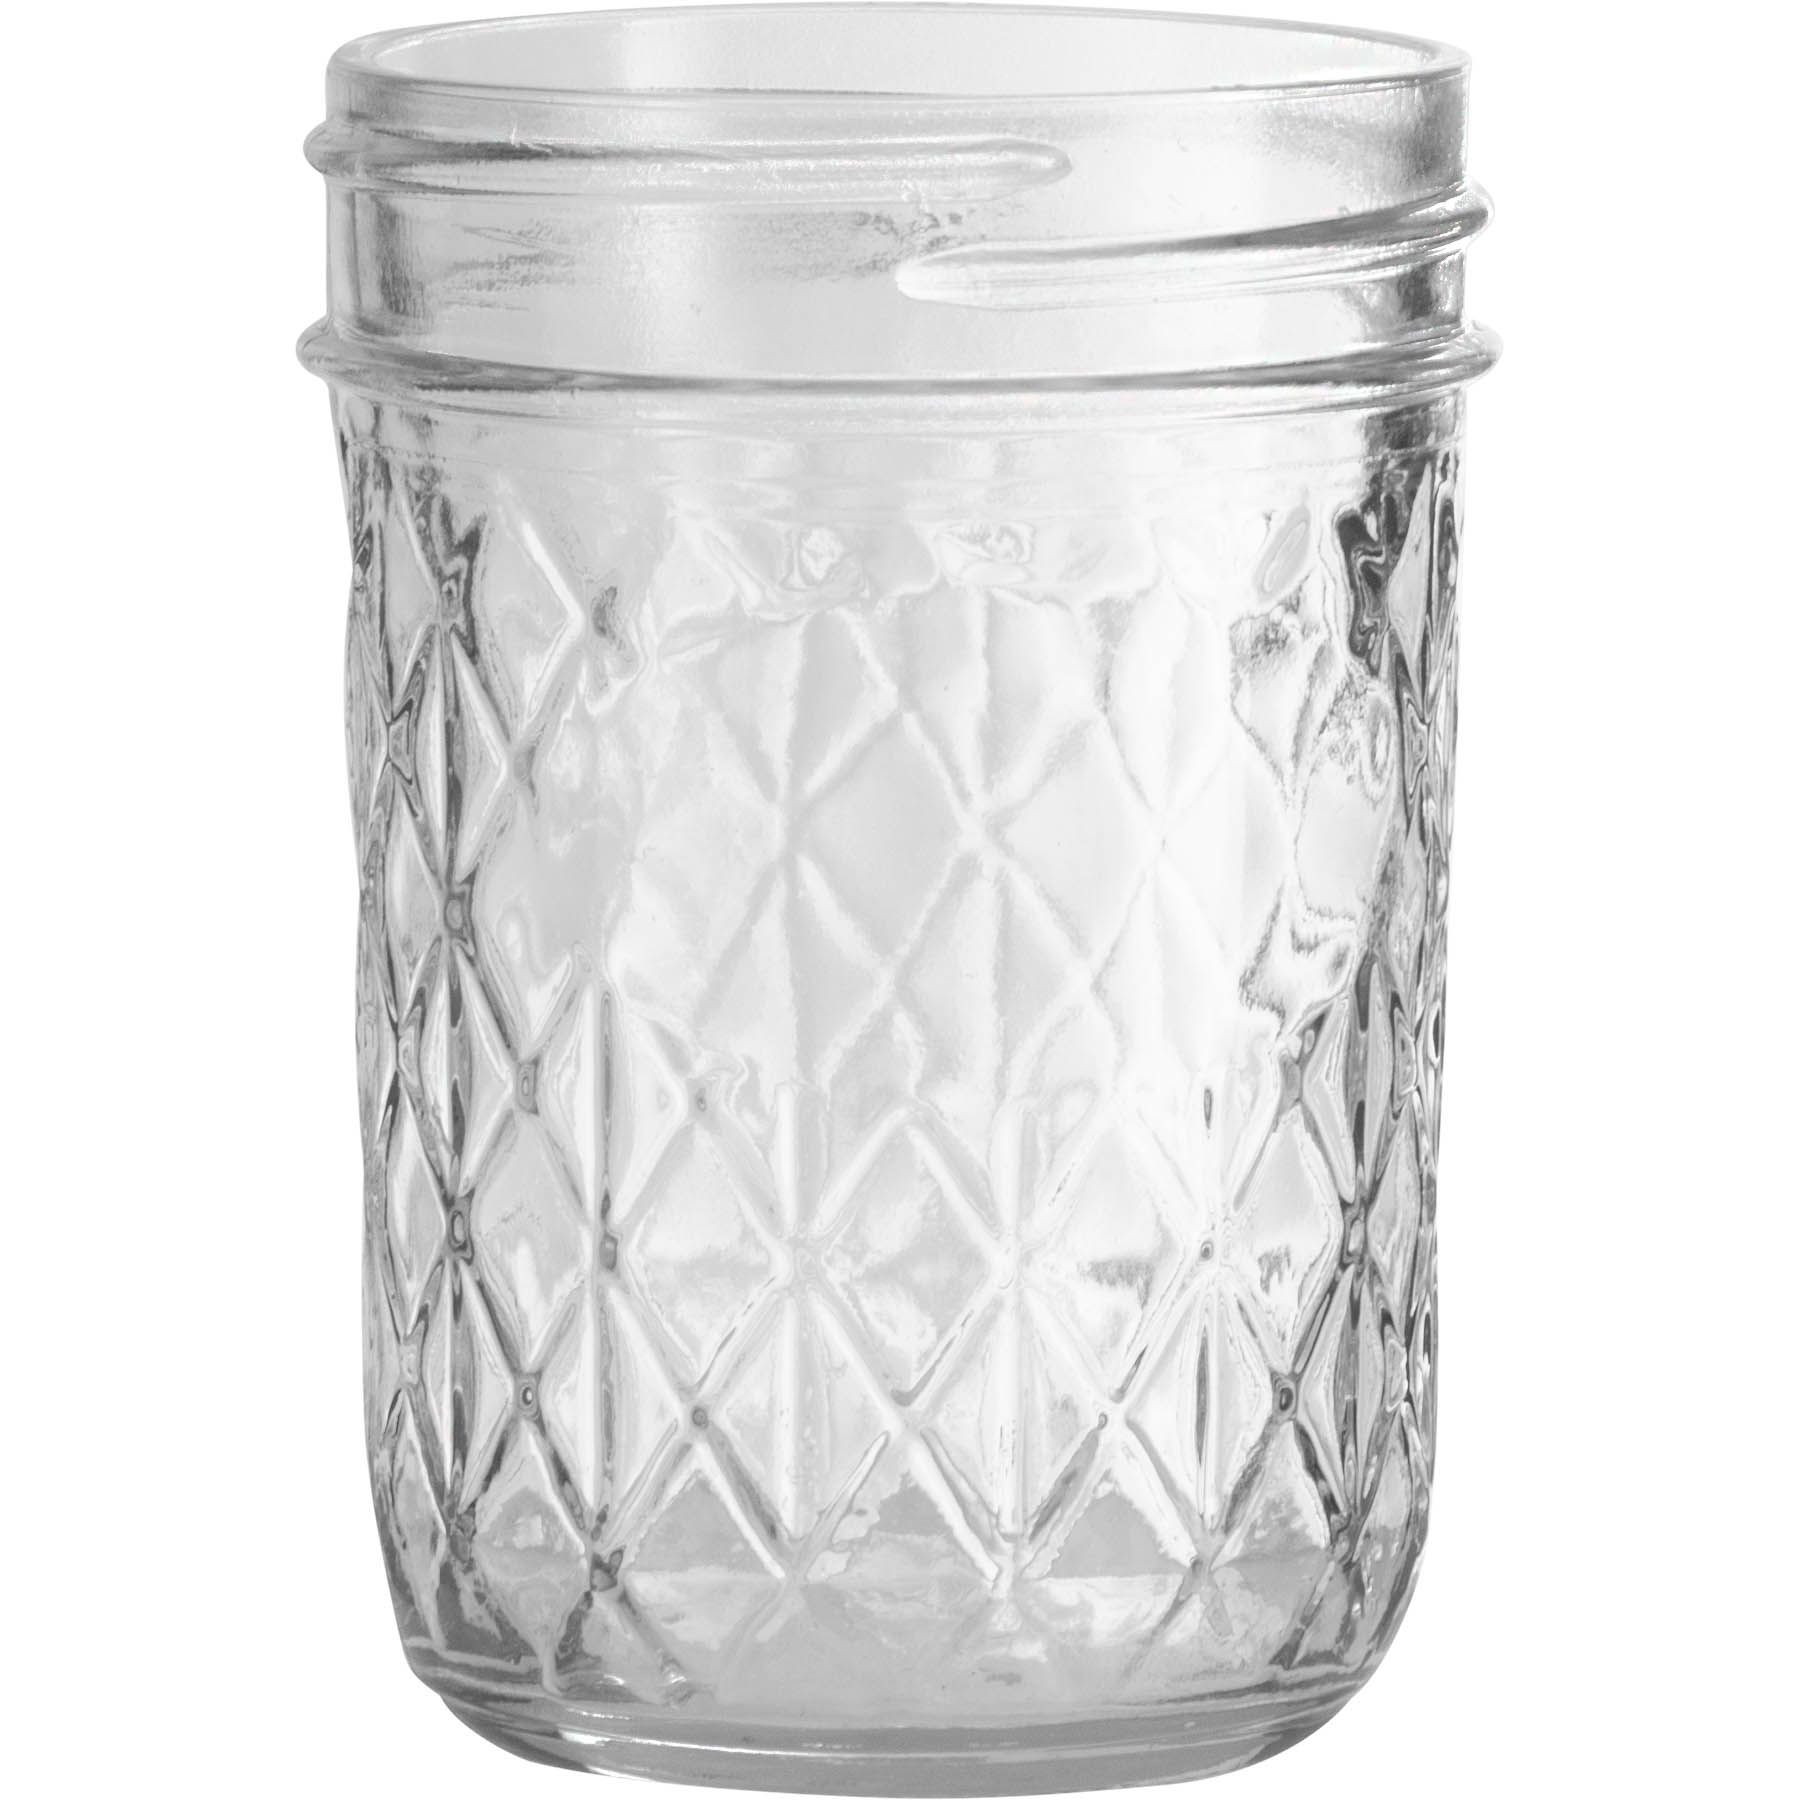 Ball 8 Oz Half Pint Quilted Crystal Jelly Jars No Lid Bulk